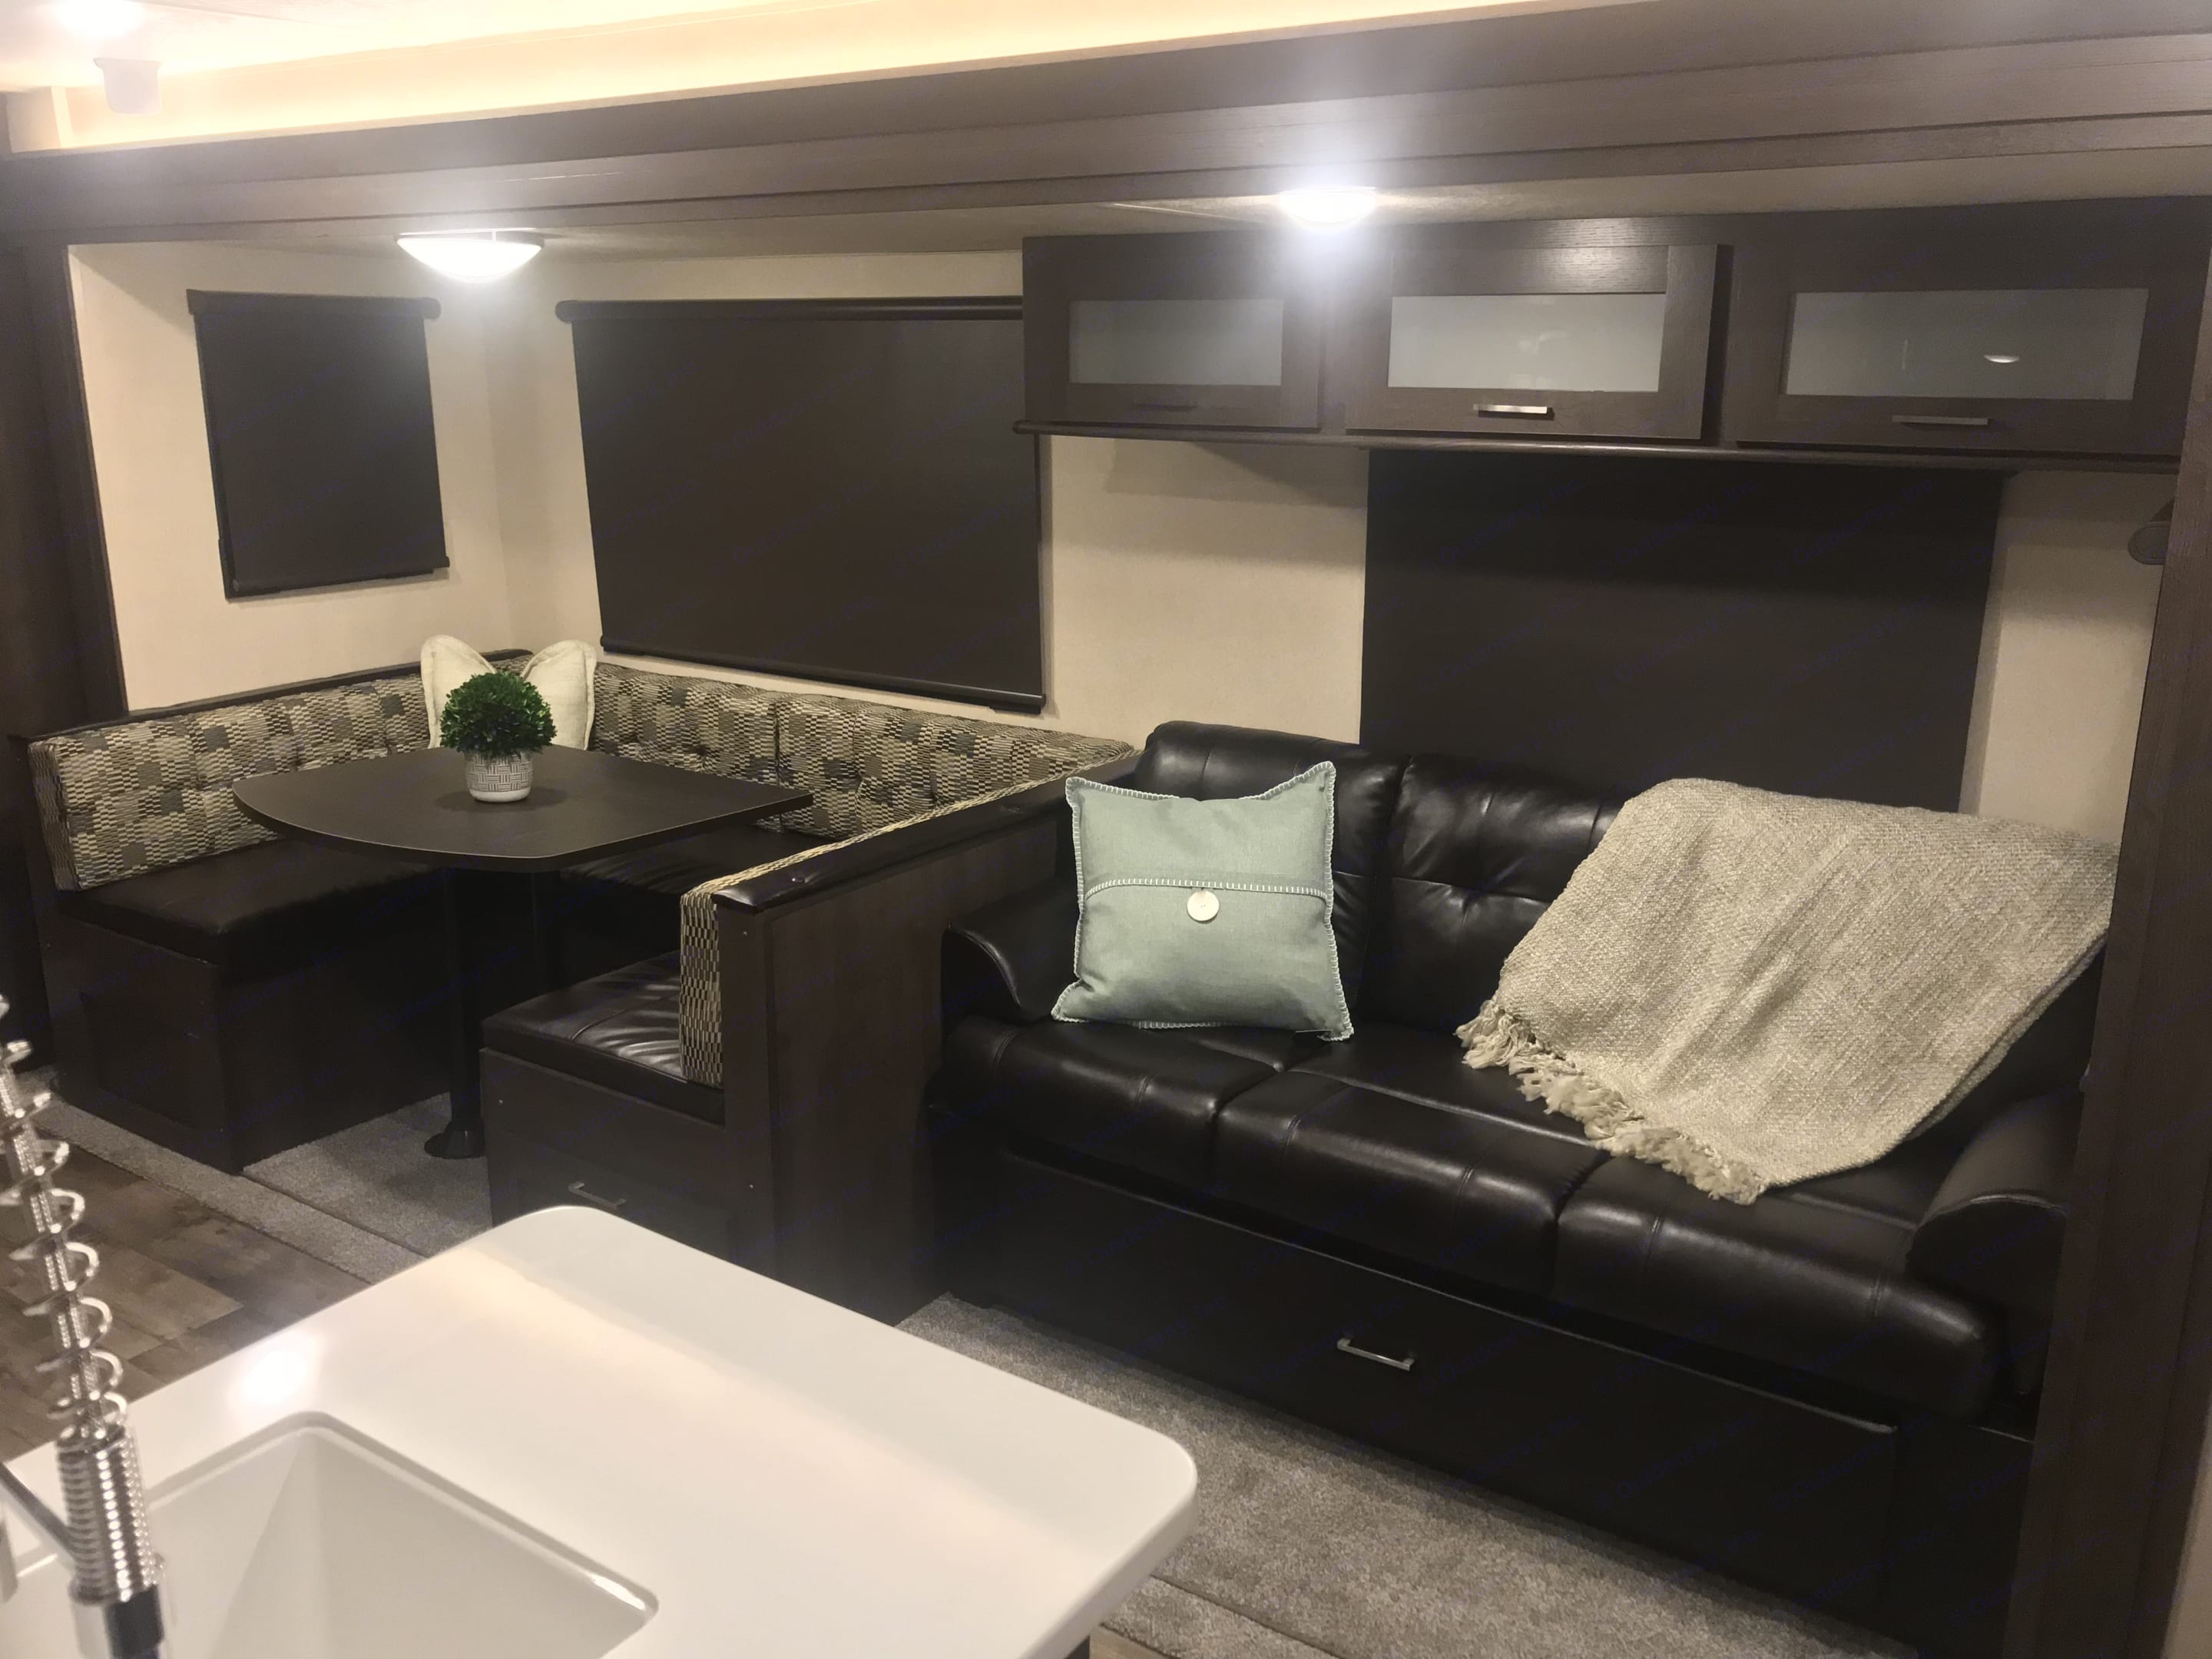 The couch has storage above it in the cabinets and below it. There is also storage under the dining area.. Forest River Wildwood 32BHDS 2018